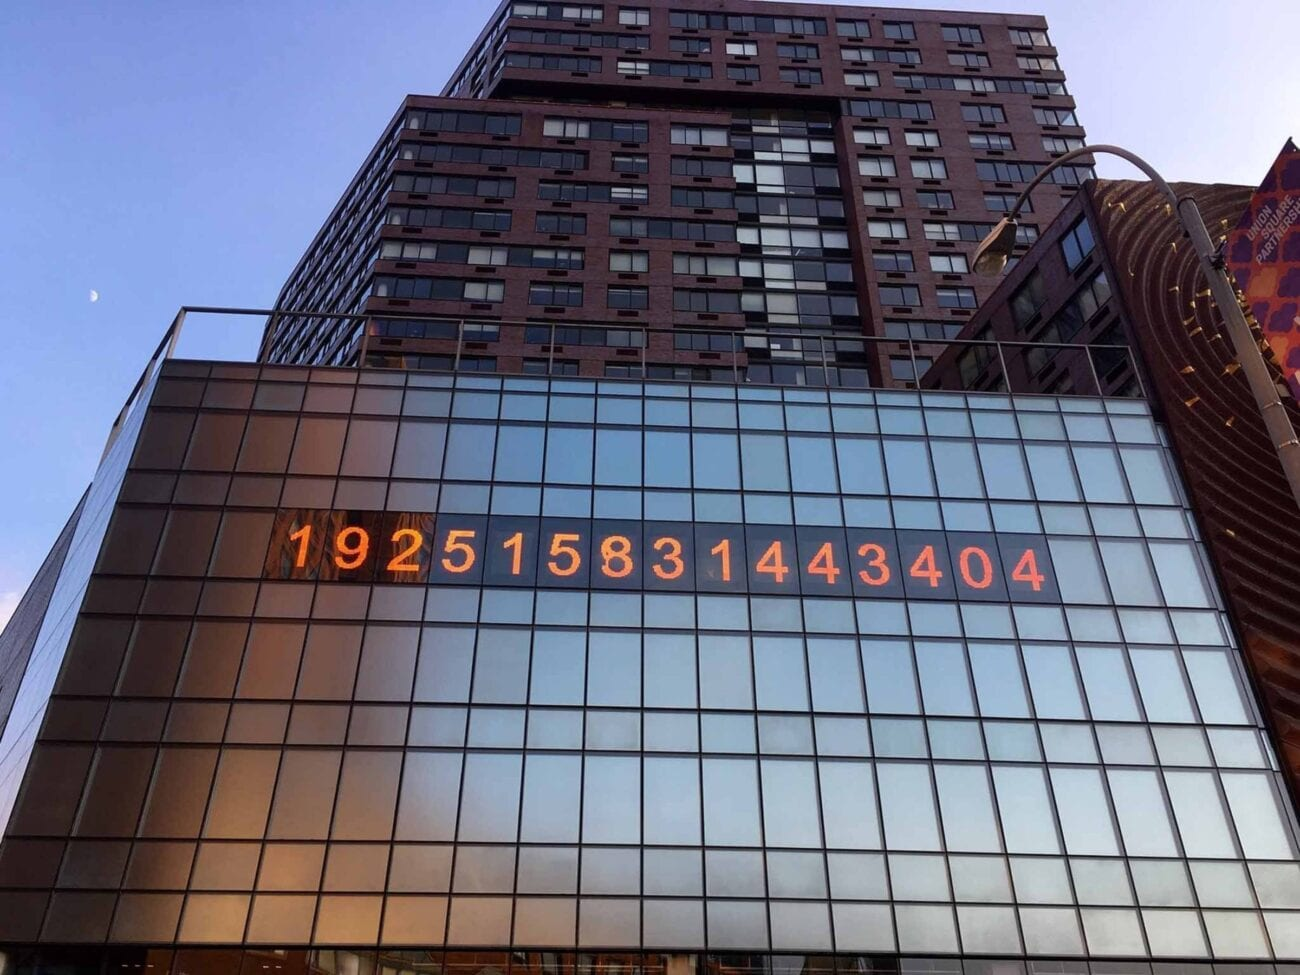 Is the famous doomsday clock really inching closer to midnight? Discover the new doomsday numbers on the New York Metronome Clock.